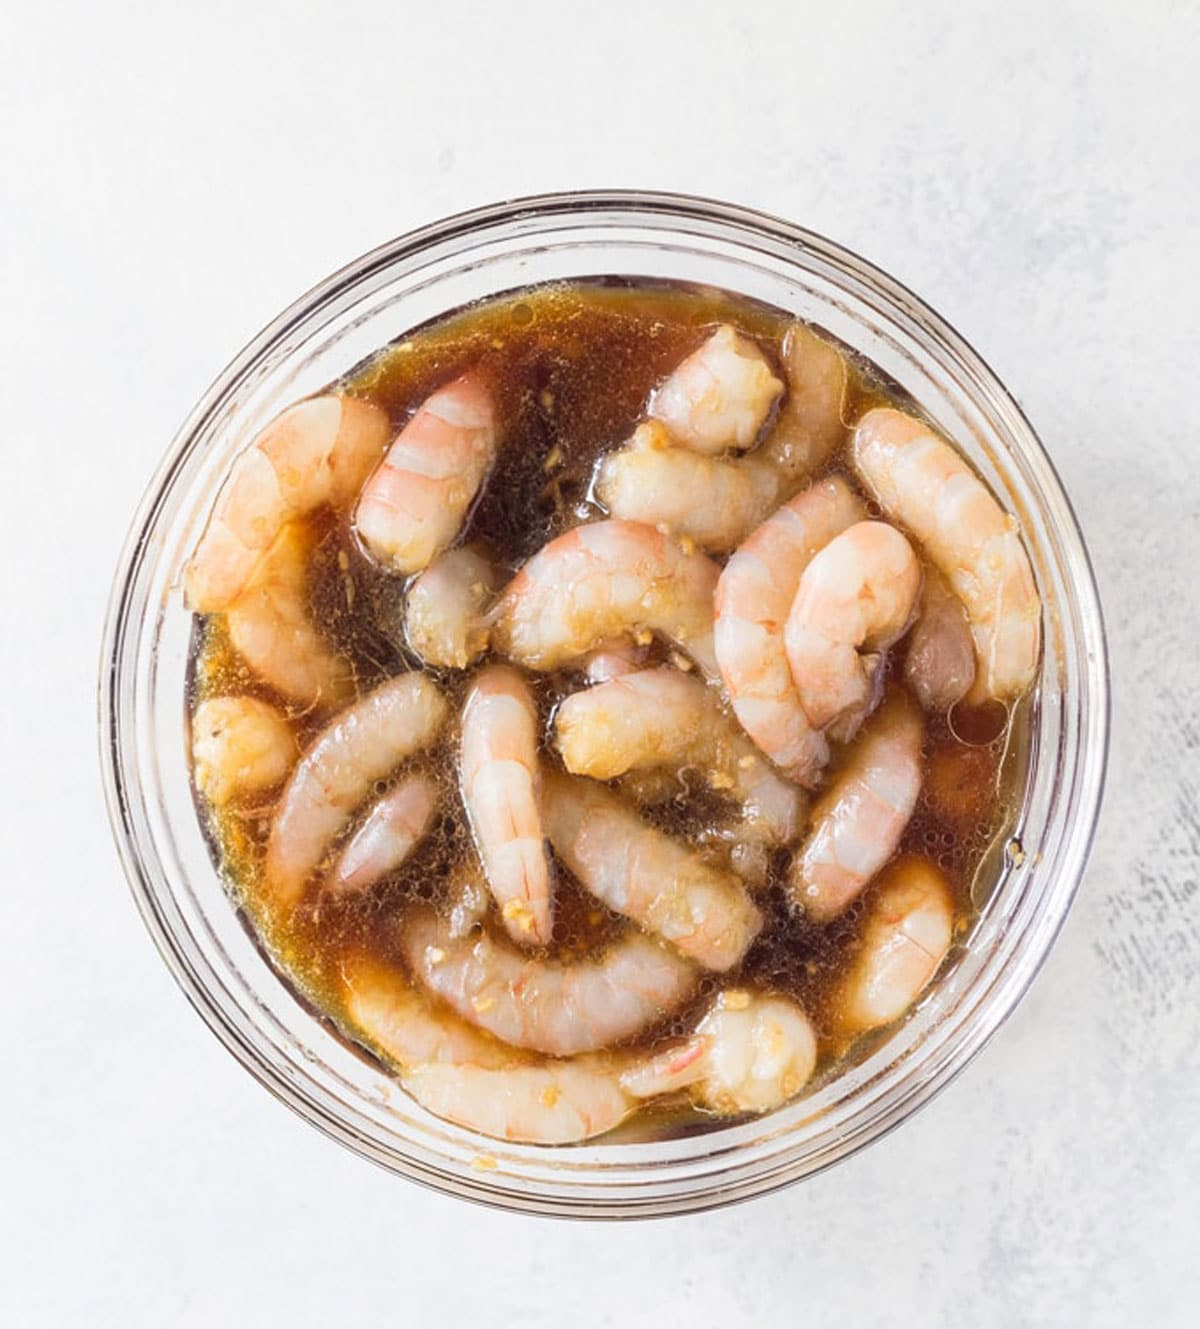 raw shrimp in a bowl with marinade